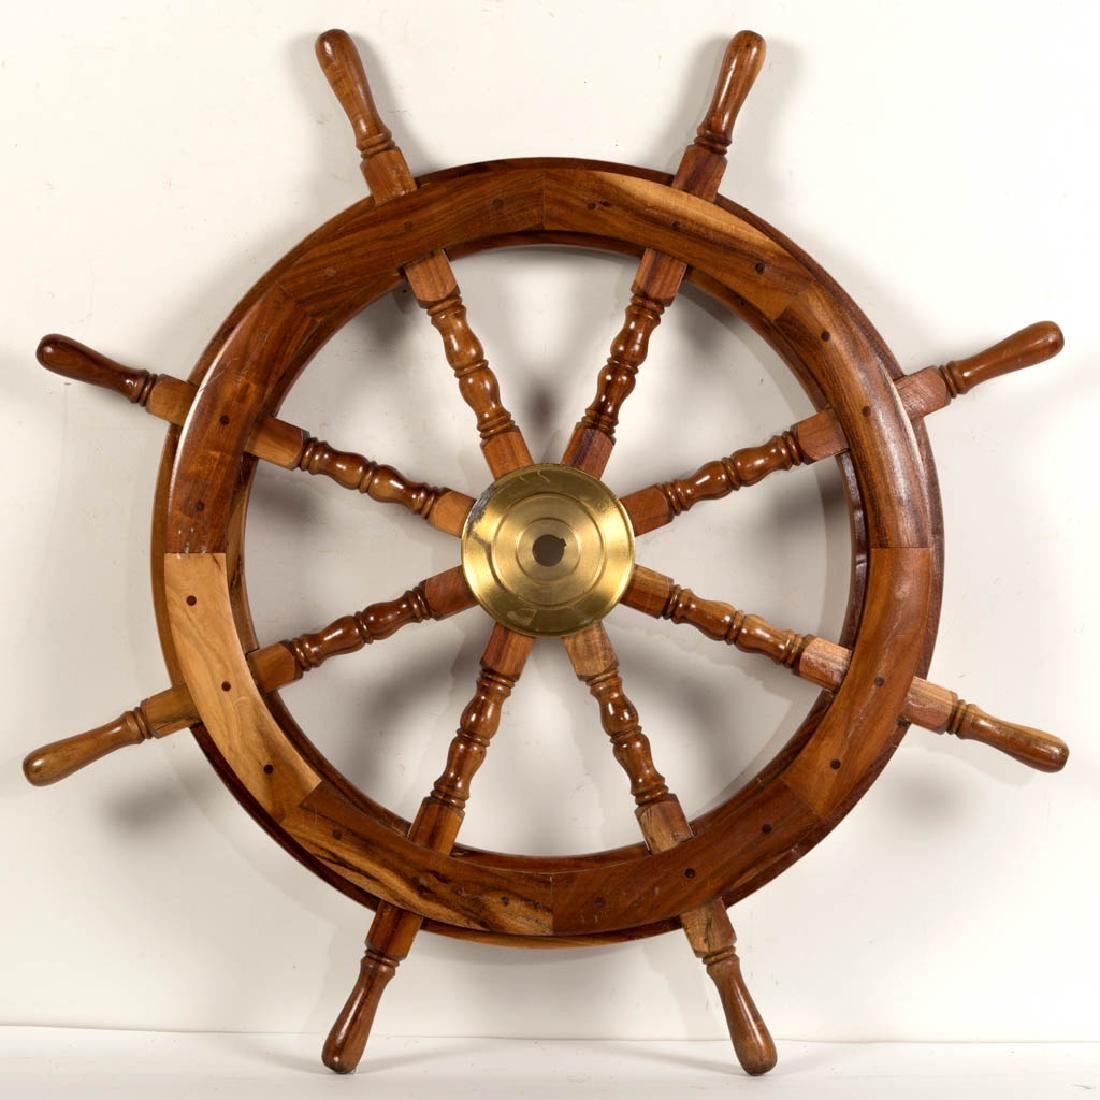 DECORATIVE WOOD AND BRASS SHIP'S WHEEL